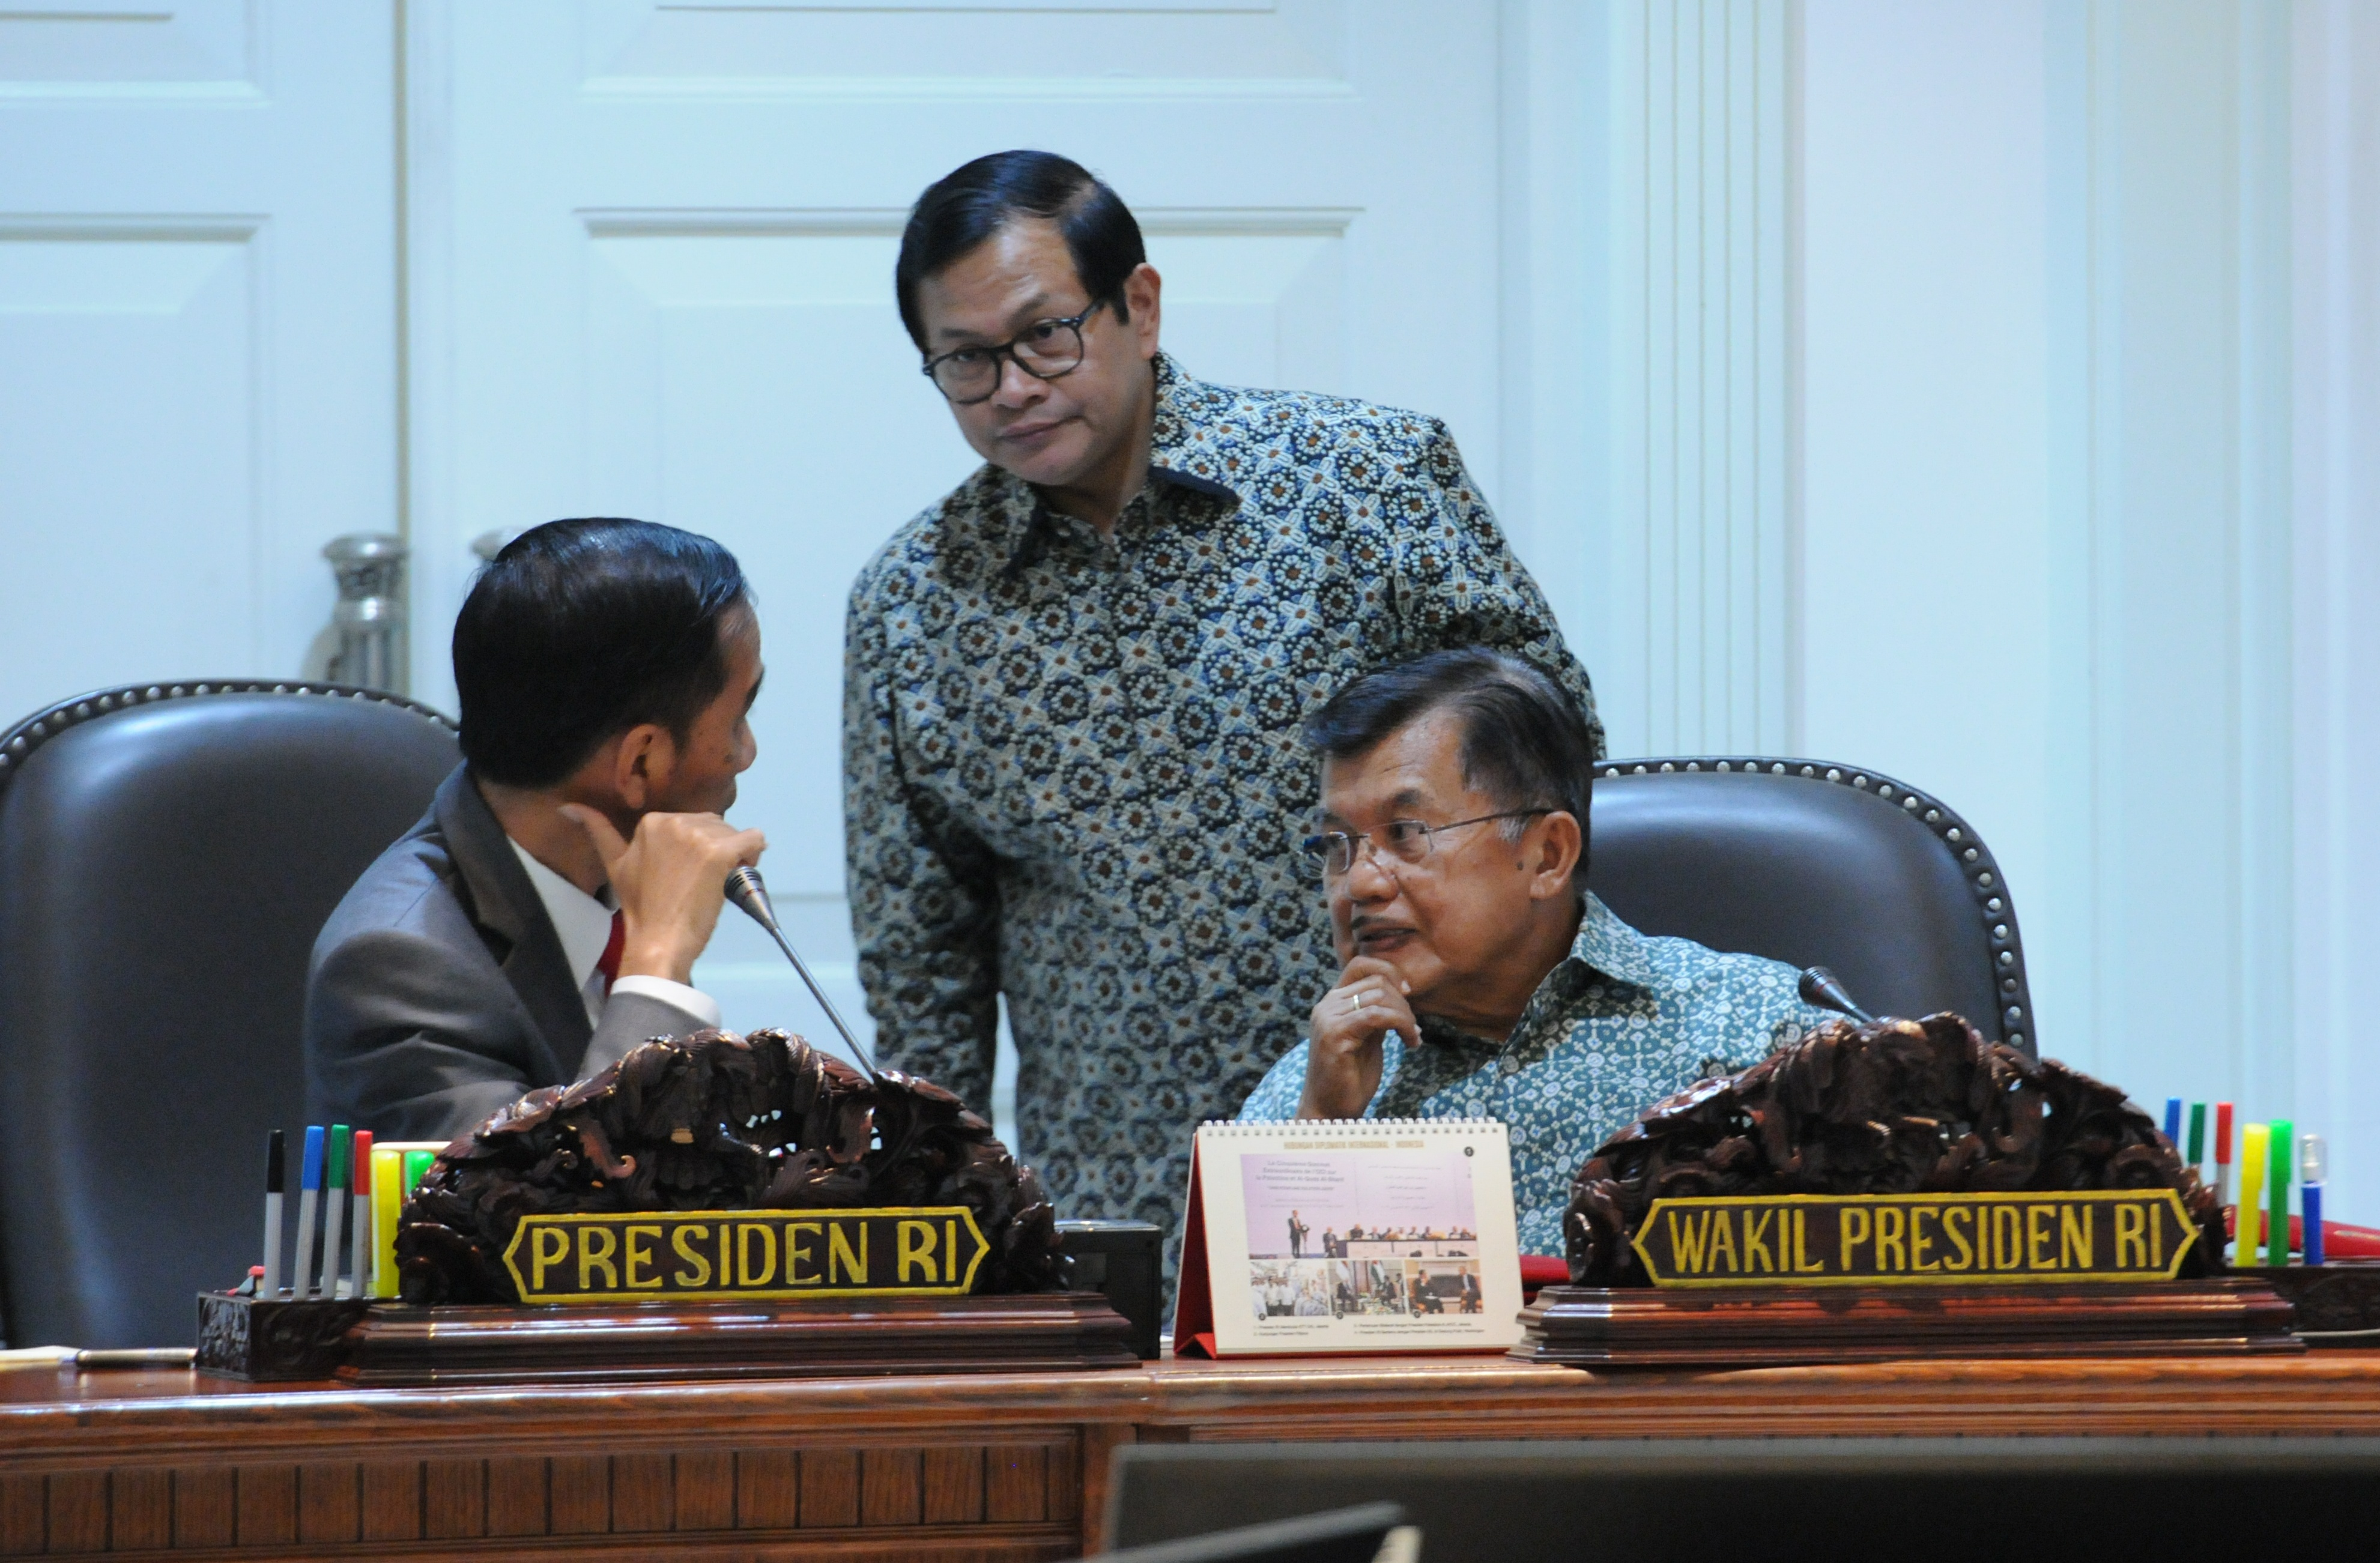 President Jokowi has discussions with Vice President Jusuf Kalla and Cabinet Secretary Pramono Anung before a closed meeting at the Presidential Office, Jakarta, Wednesday (29/3) afternoon. (Photo: JAY/PR)